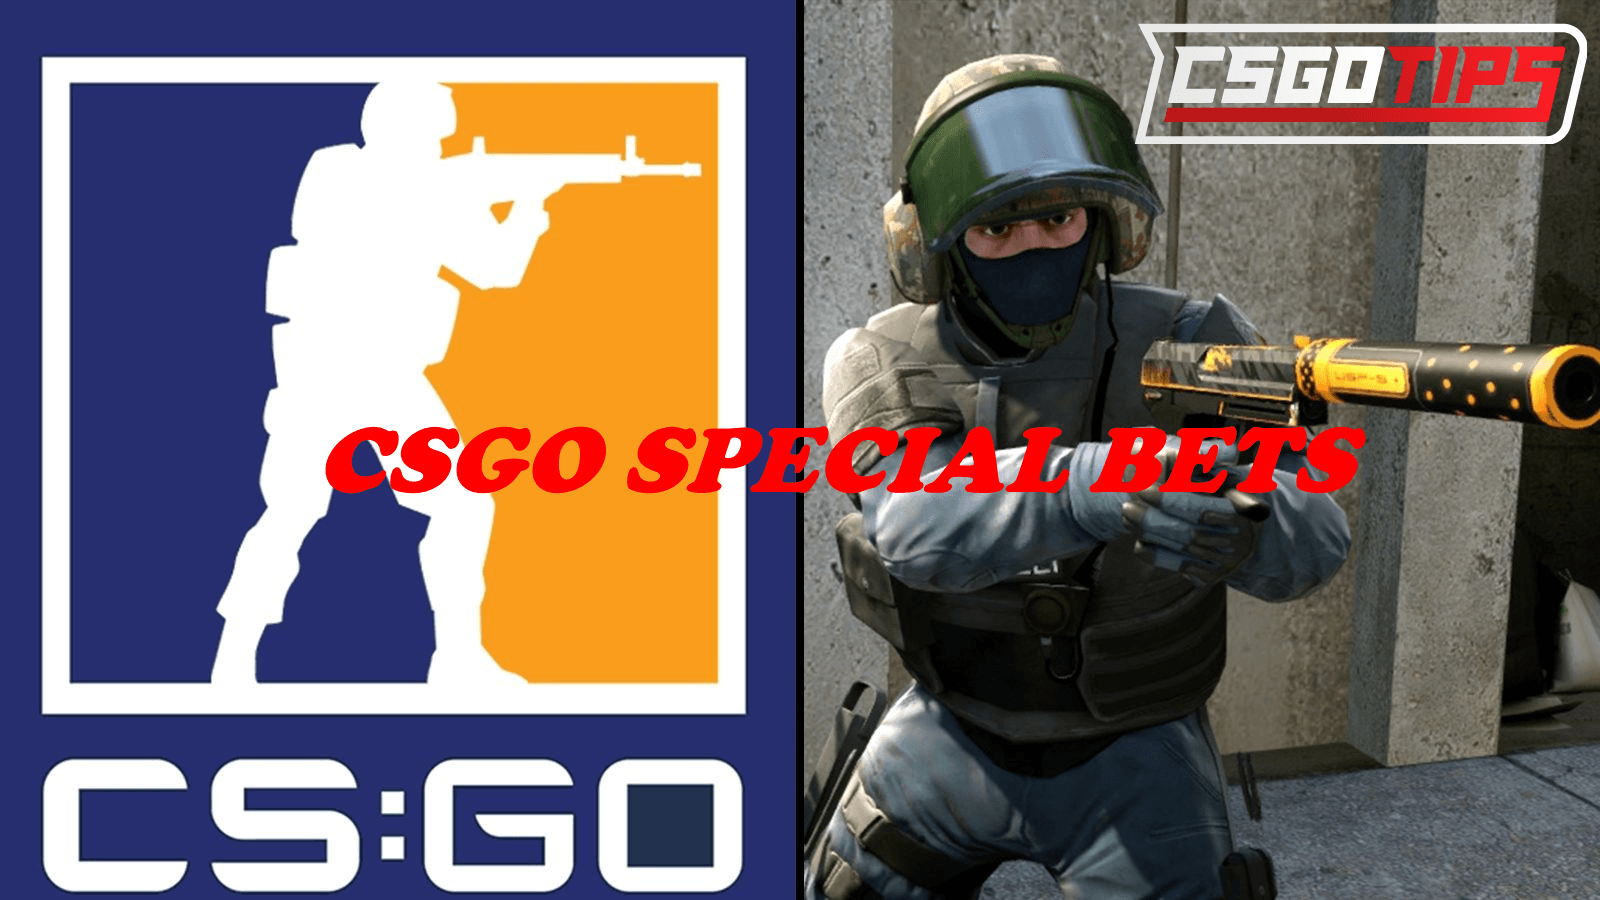 CSGO SPECIAL BETS EXPLAINED